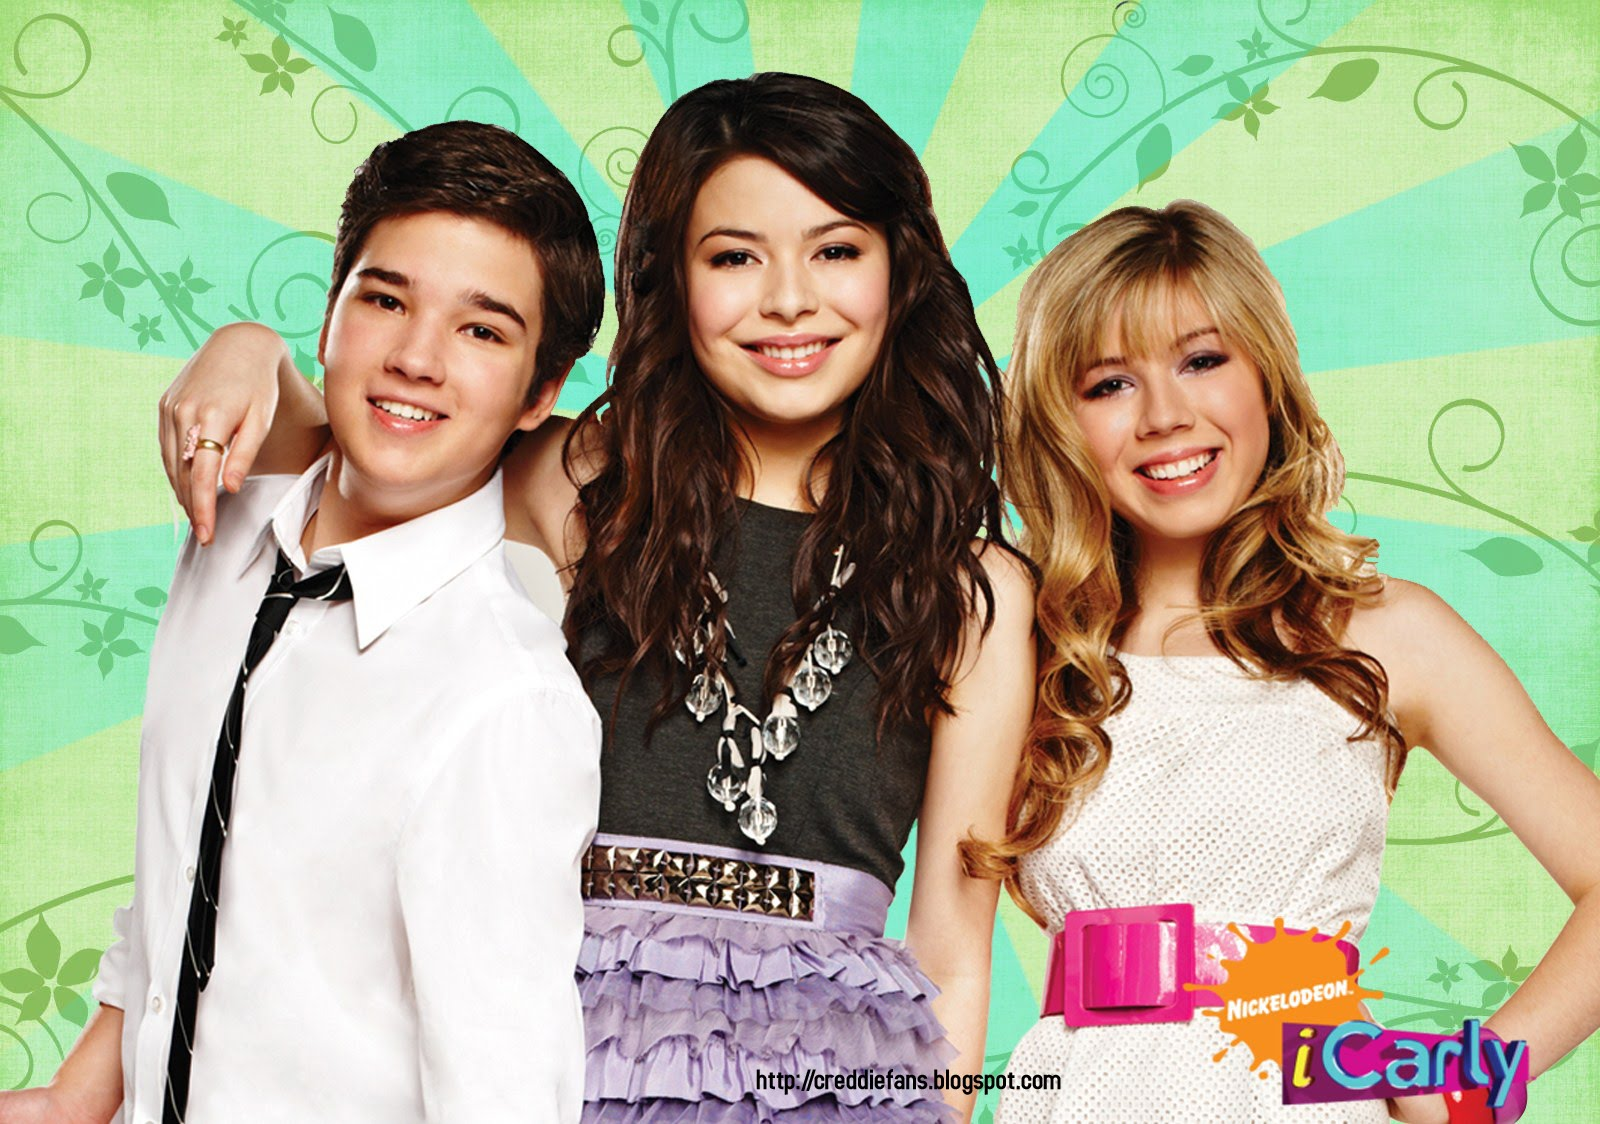 Image wallpaper icarly 2 icarly wiki - Icarly wallpaper ...